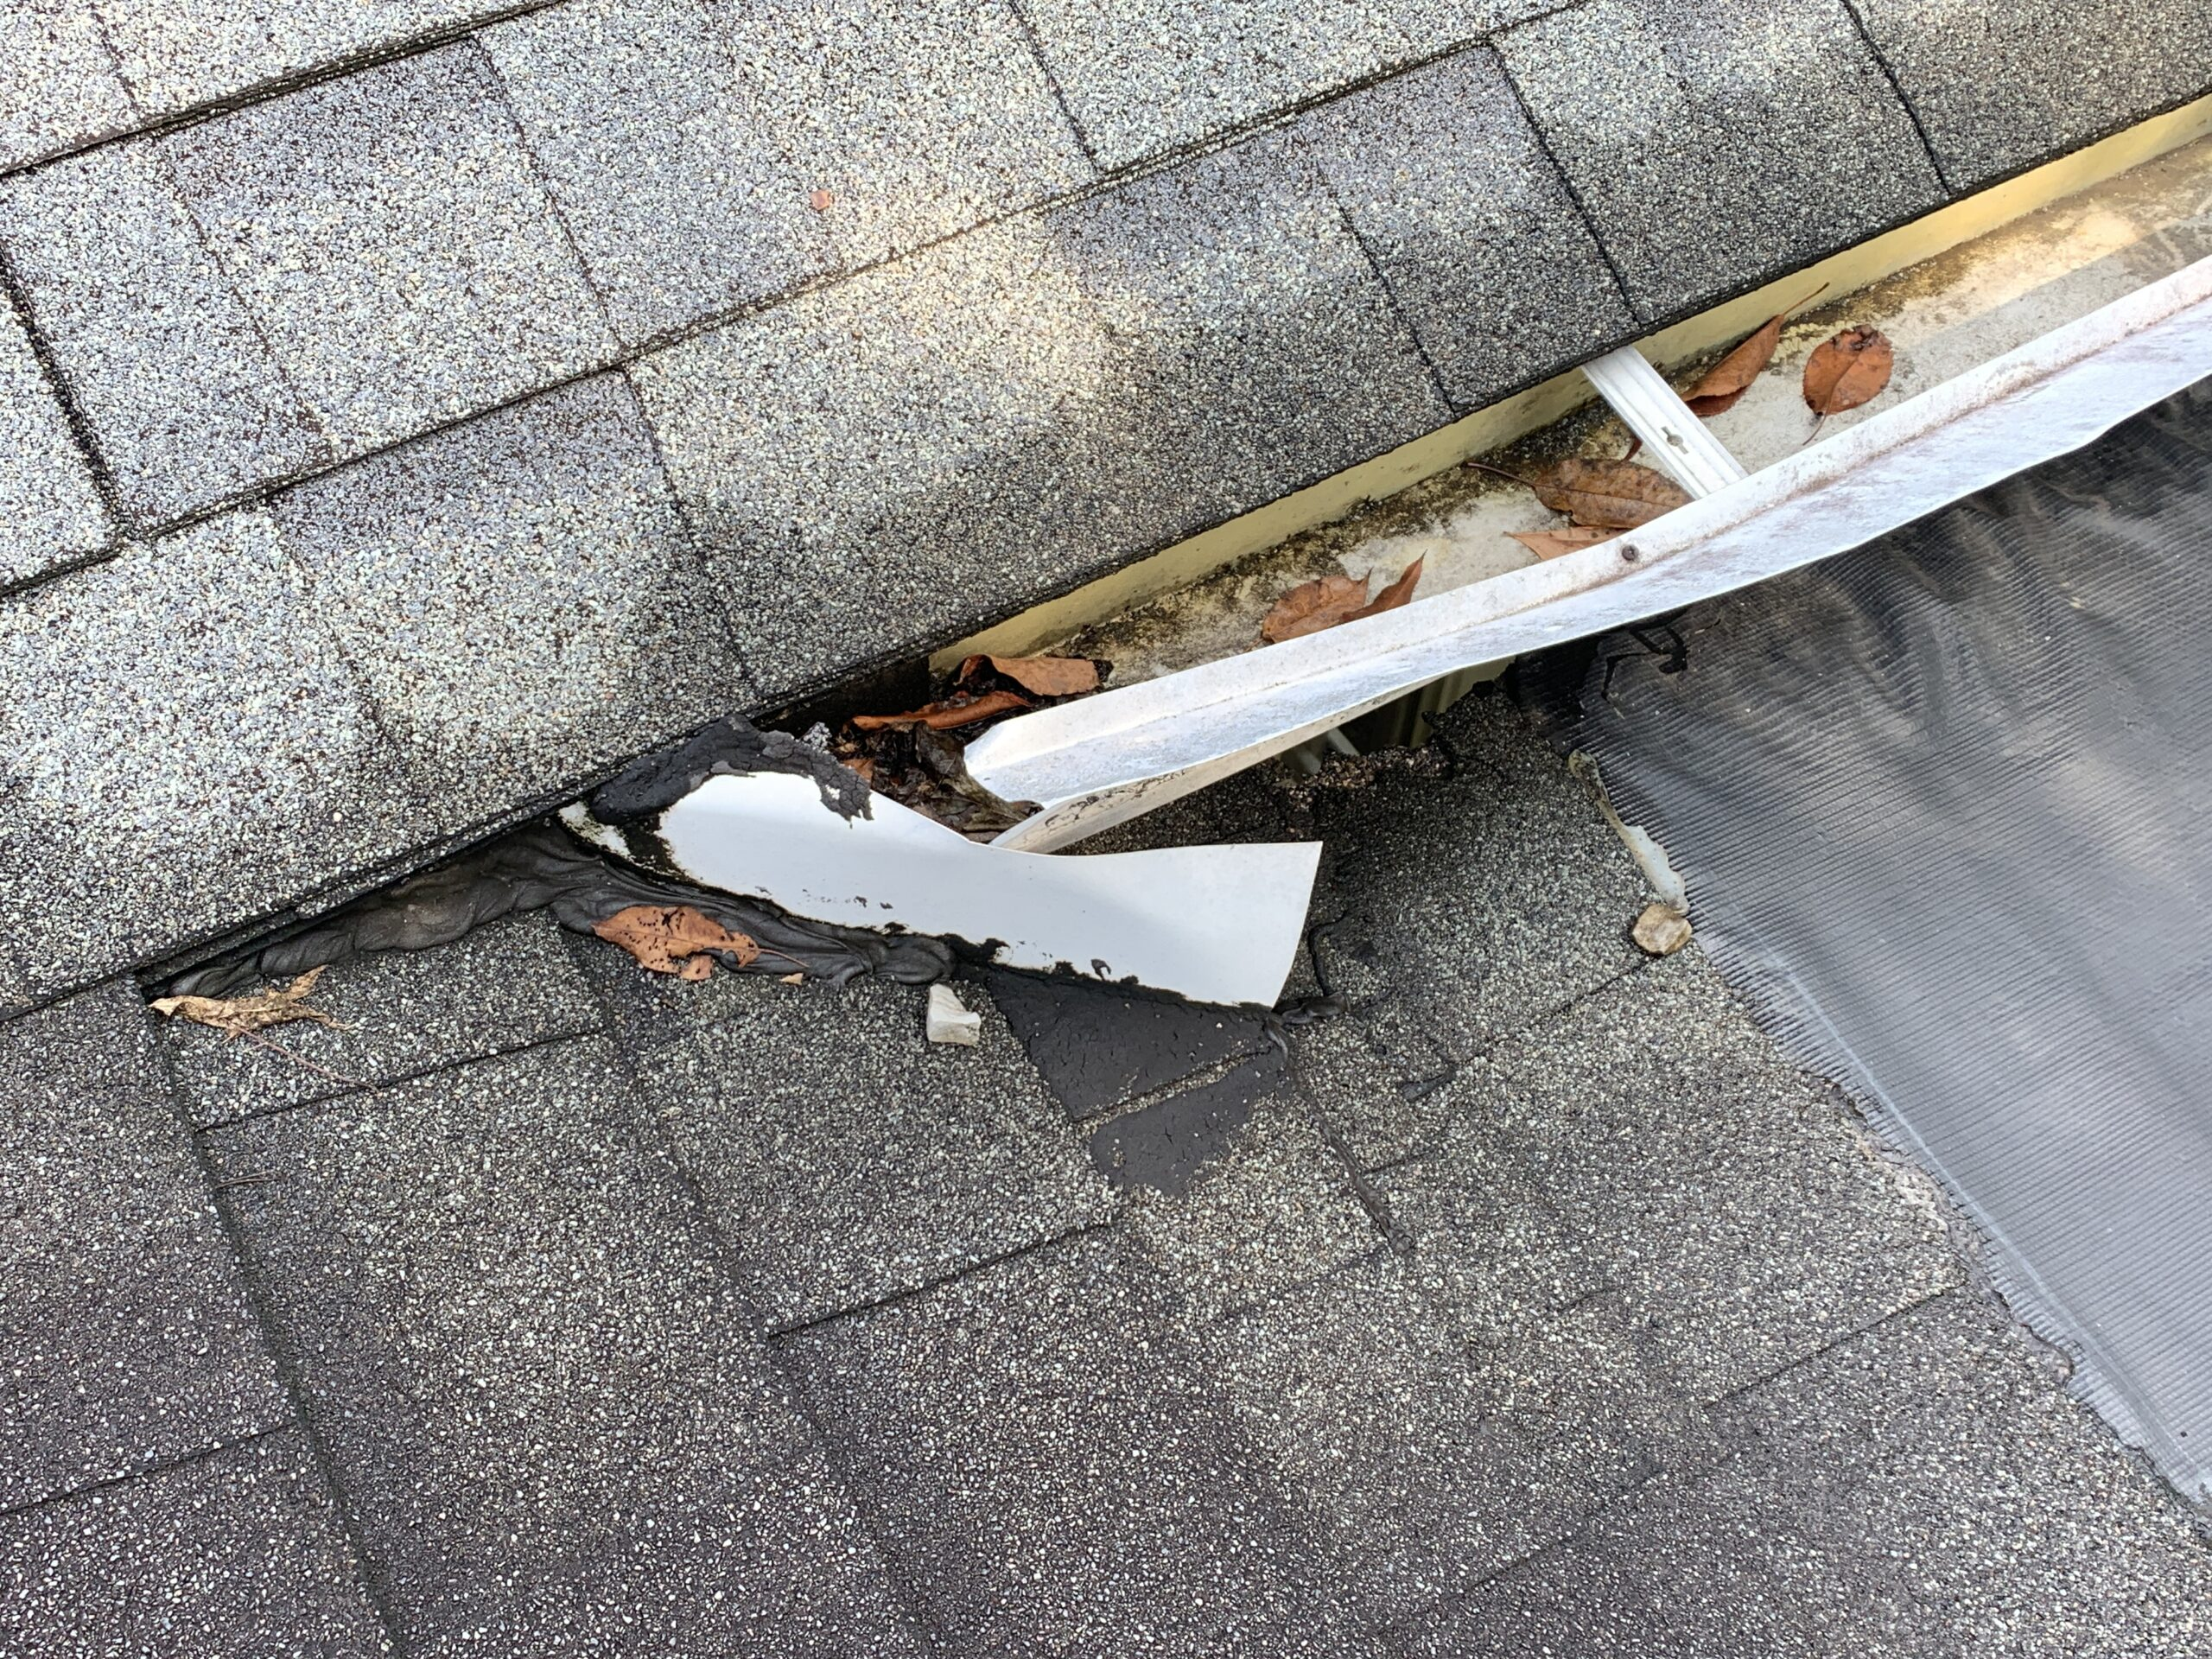 In this photo you can see that there have been some attempts to divert water from the main problem area on the flat roof adjoining to an old shingle roof. The gutter leaks and the membrane leaks and has caused severe water damage to the porch structure underneath